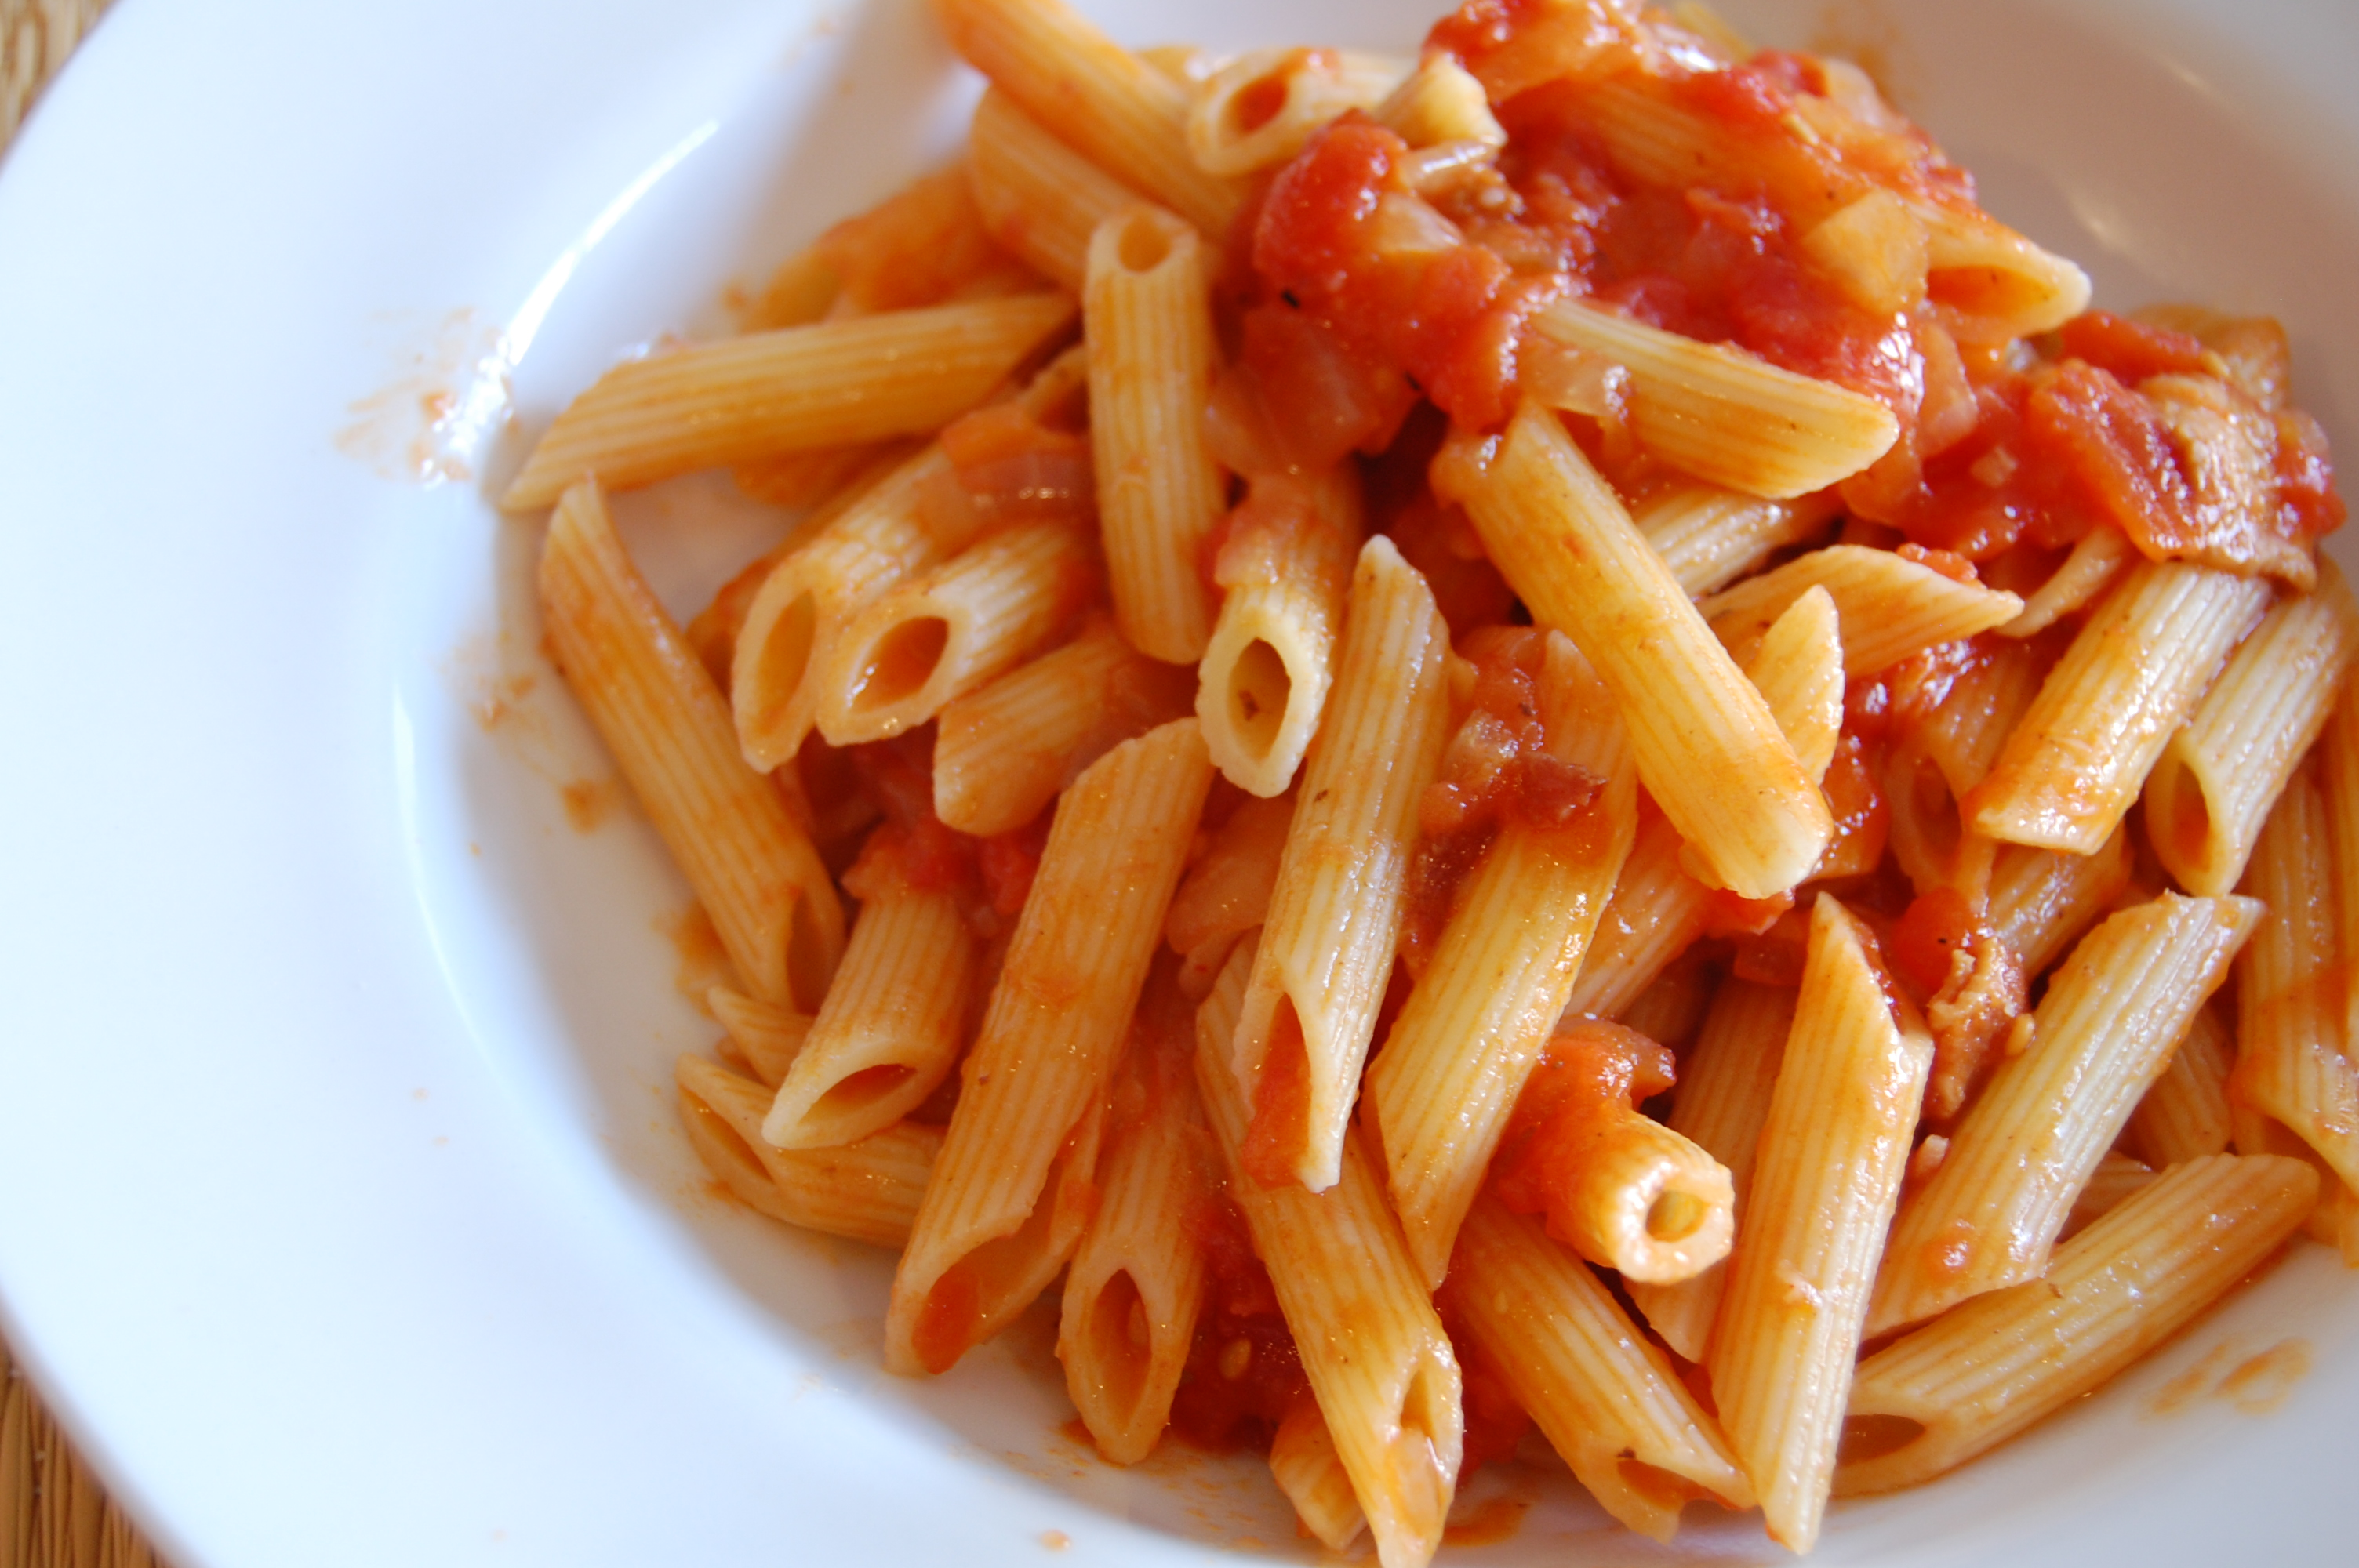 Penne with bacon and tomato sauce